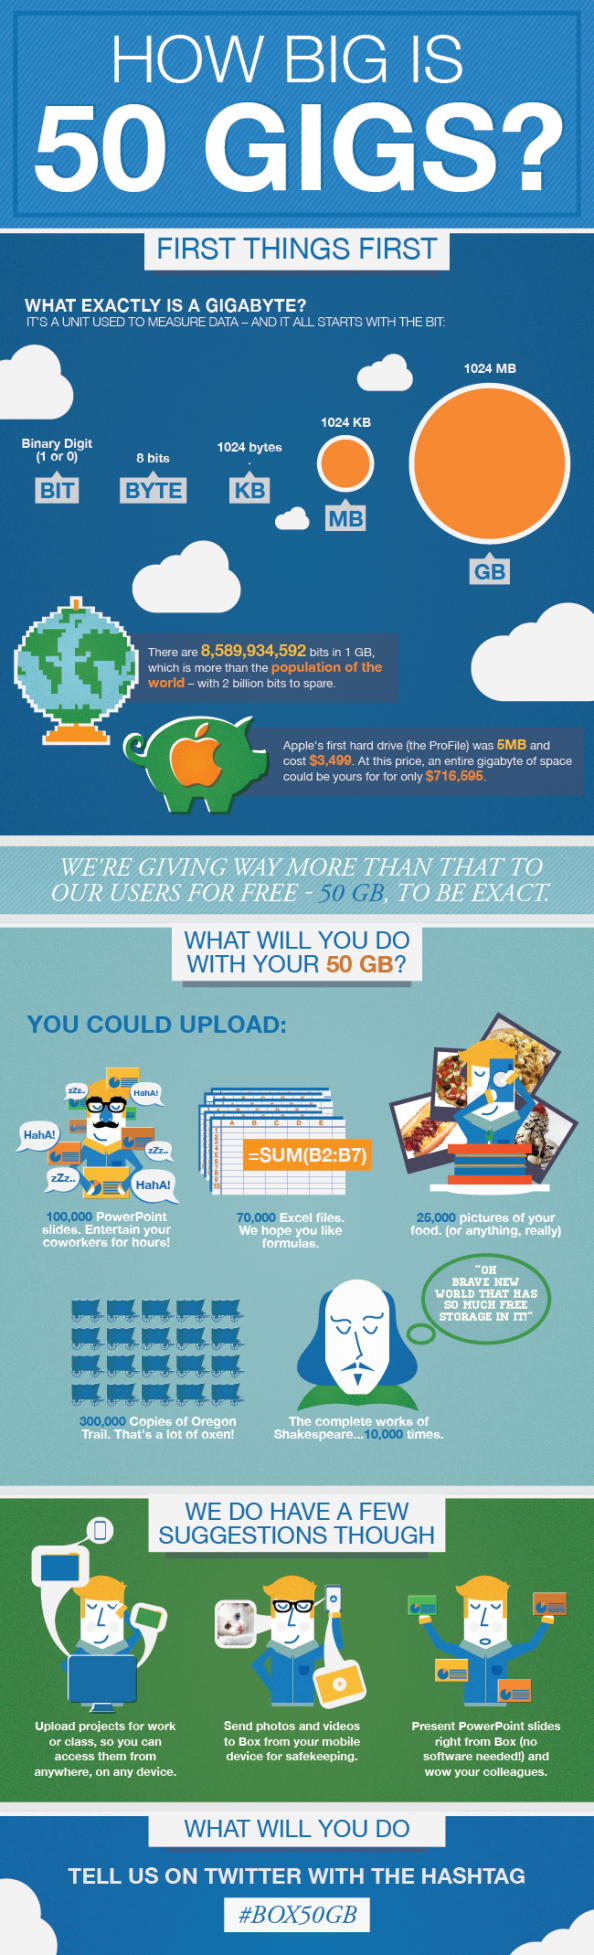 How Big is 50 Gigs? Infographic